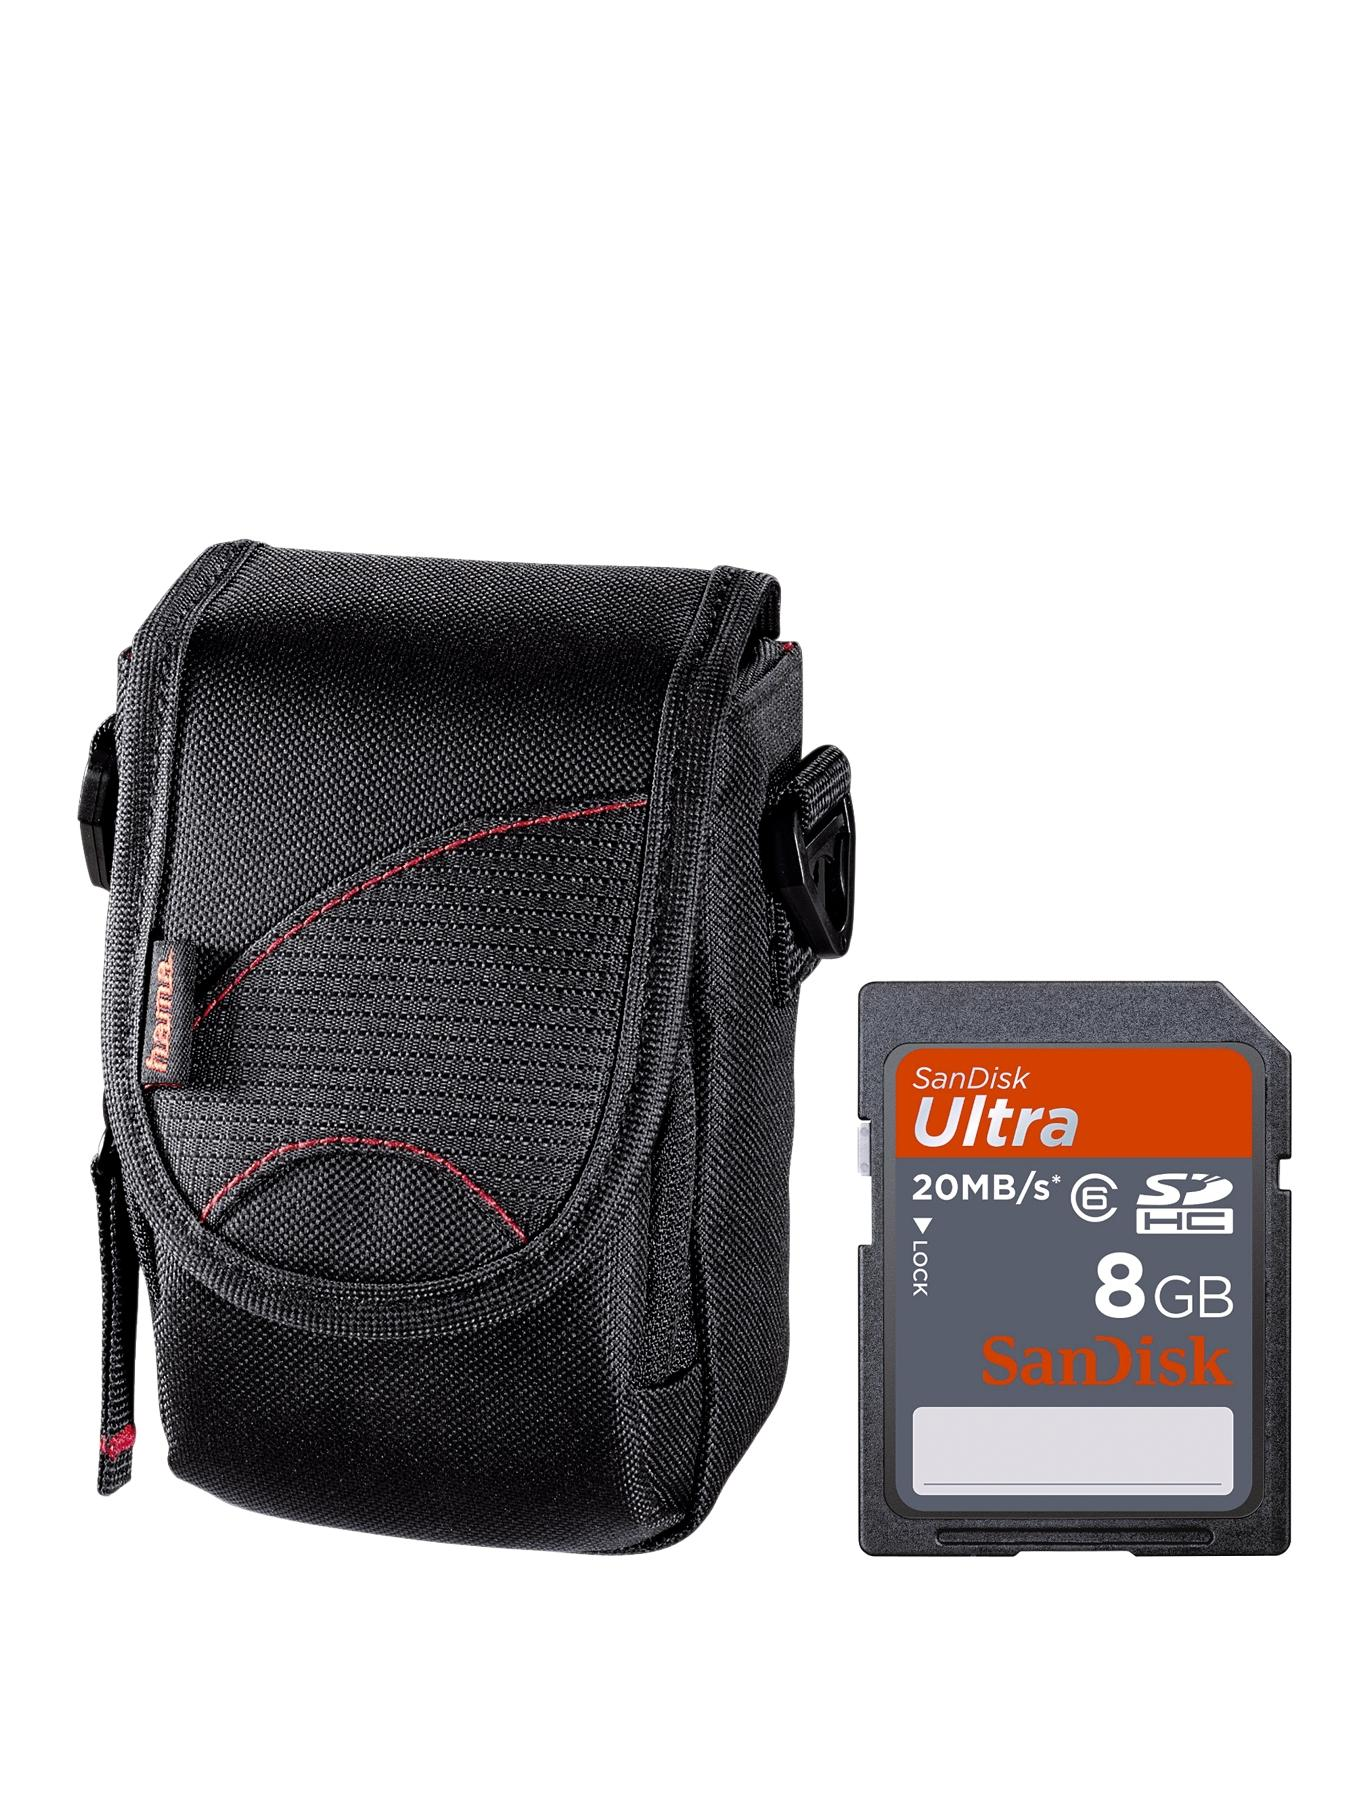 HAMA Superzoom Bundle with SanDisk 8Gb Ultra SD Card and Astana Camera Bag at Very, from Littlewoods